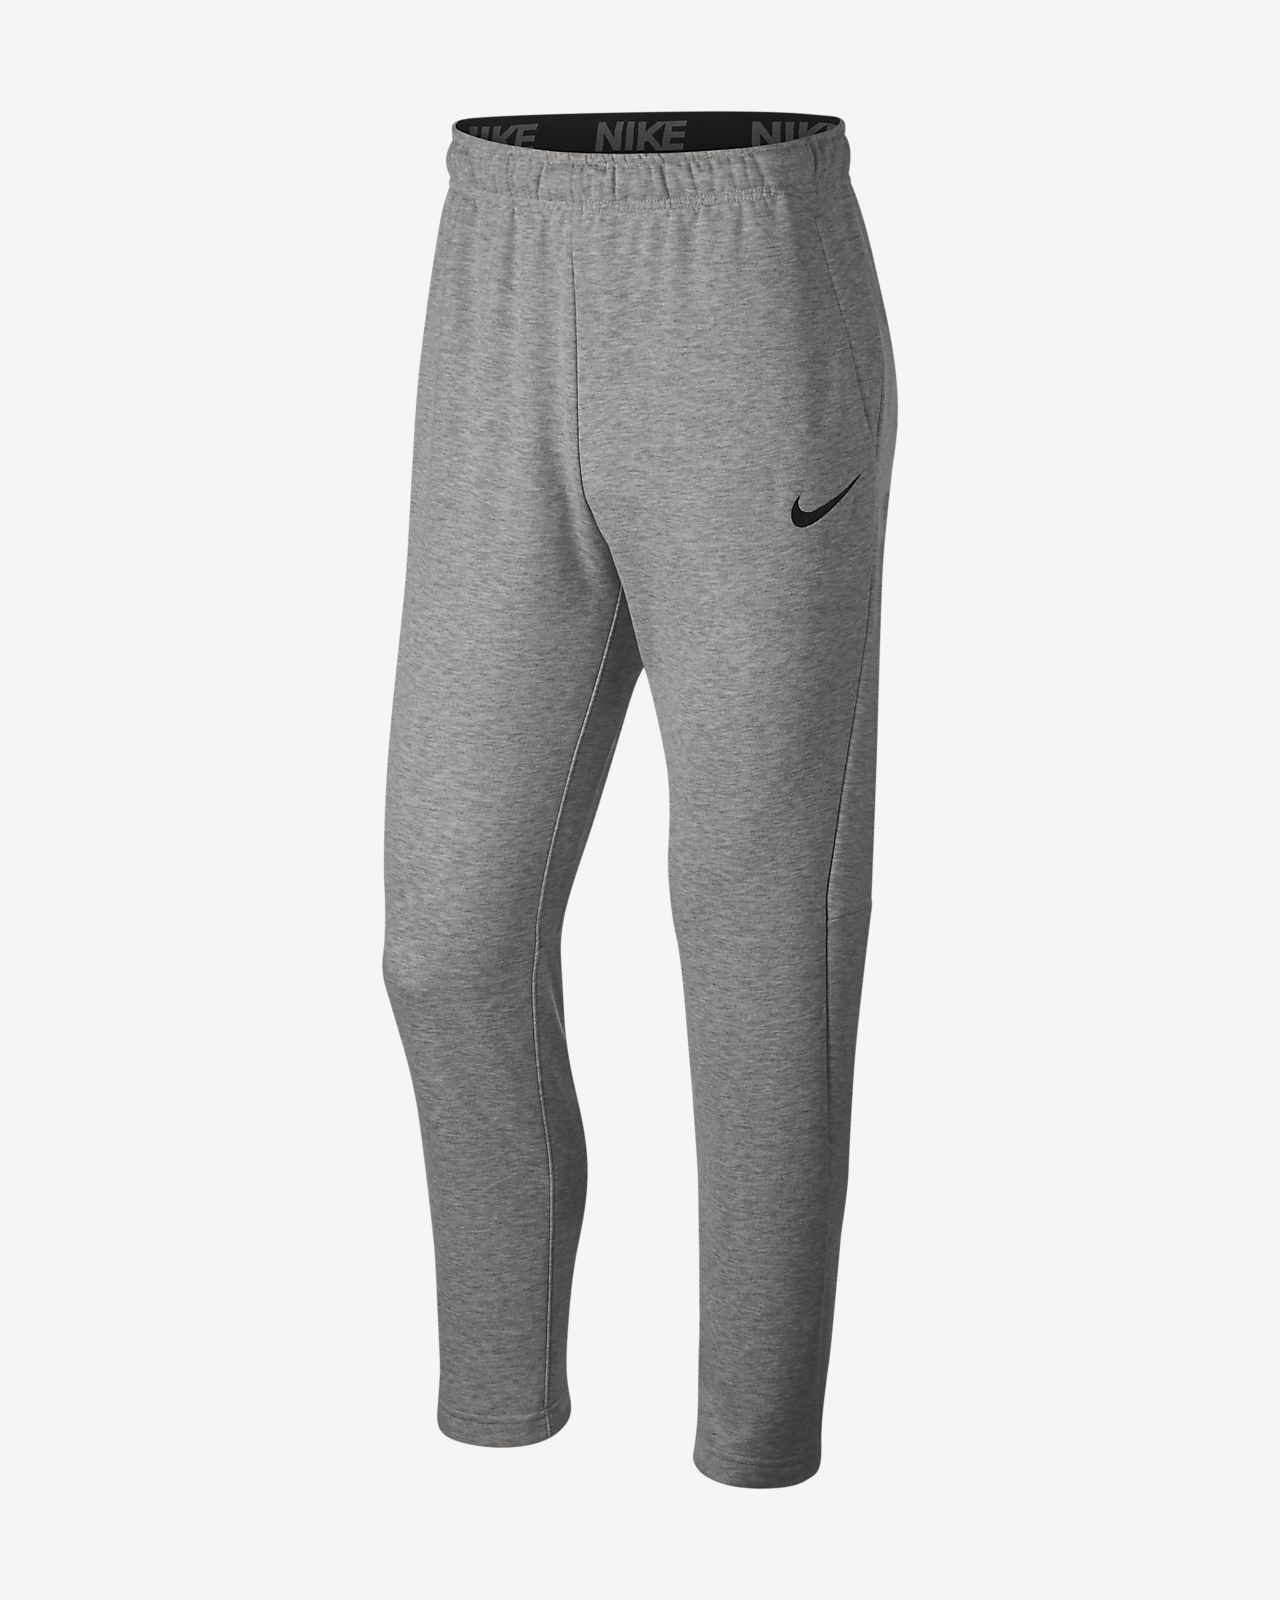 nike pants zipper leg